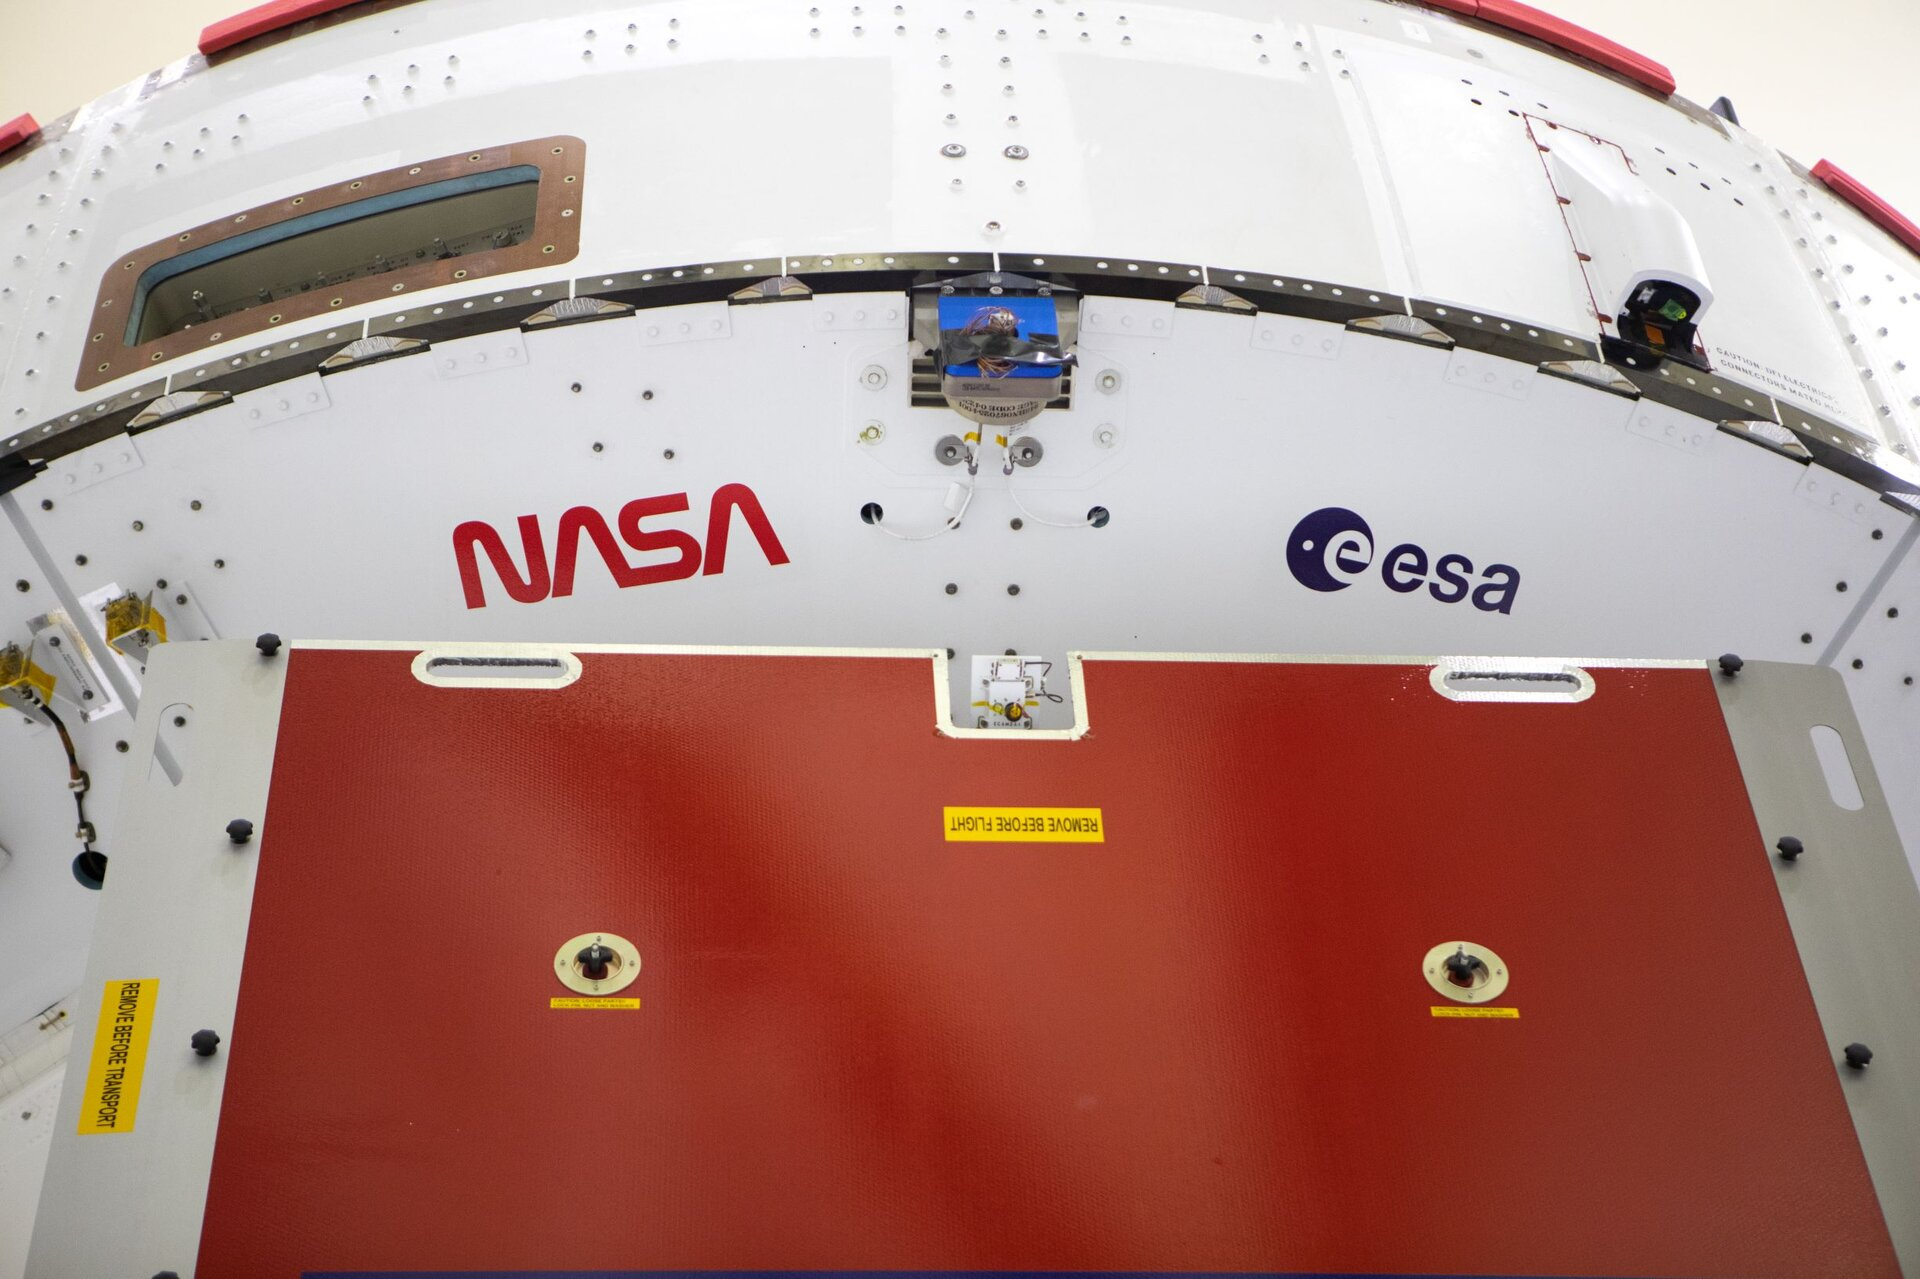 Logos on Orion